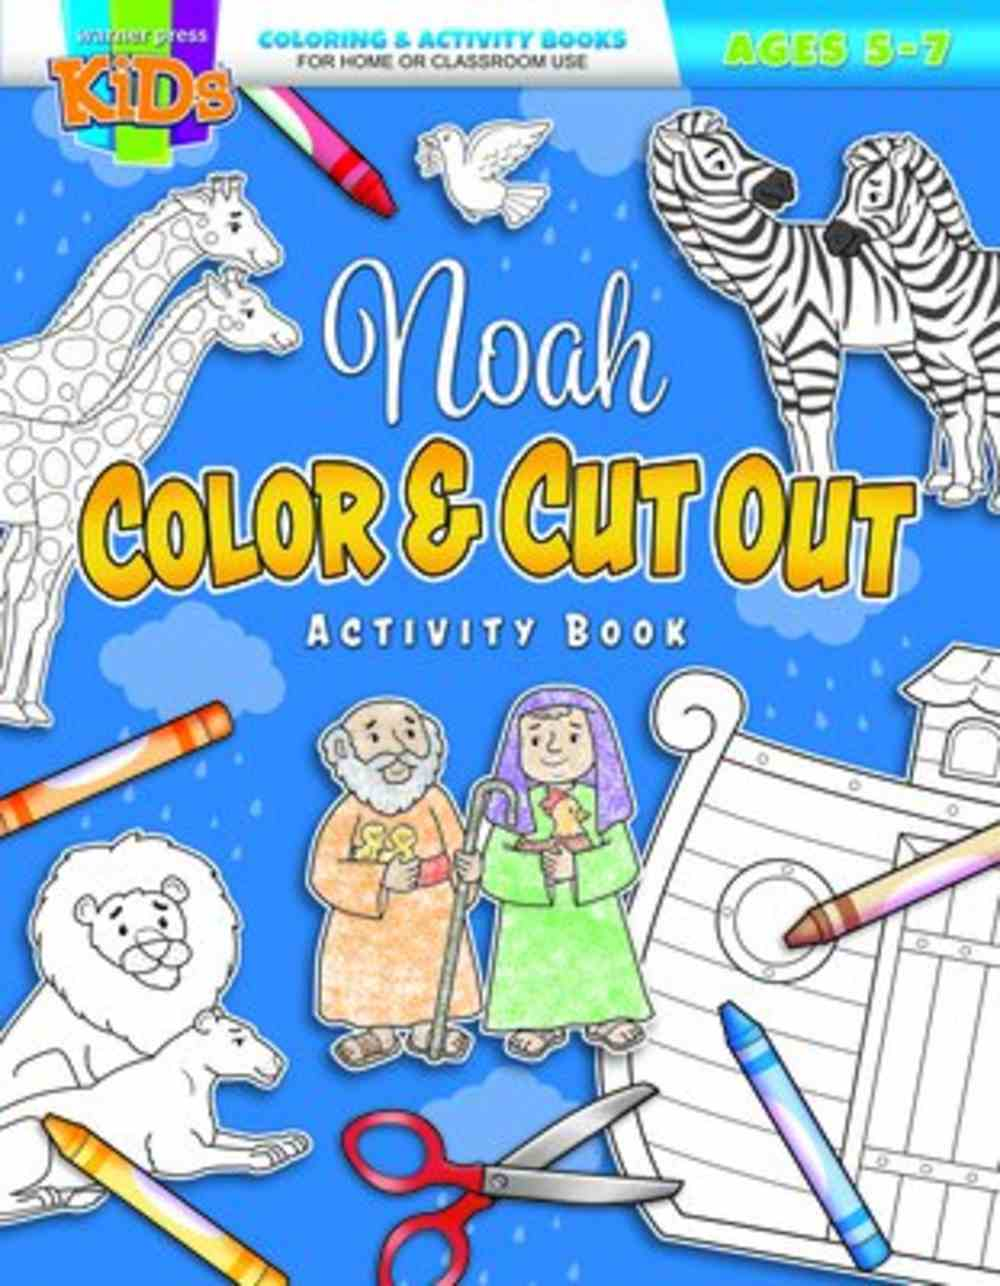 Noah Color and Cut Out Activity Book (Ages 5-7, Reproducible) (Warner Press Colouring & Activity Books Series) Paperback